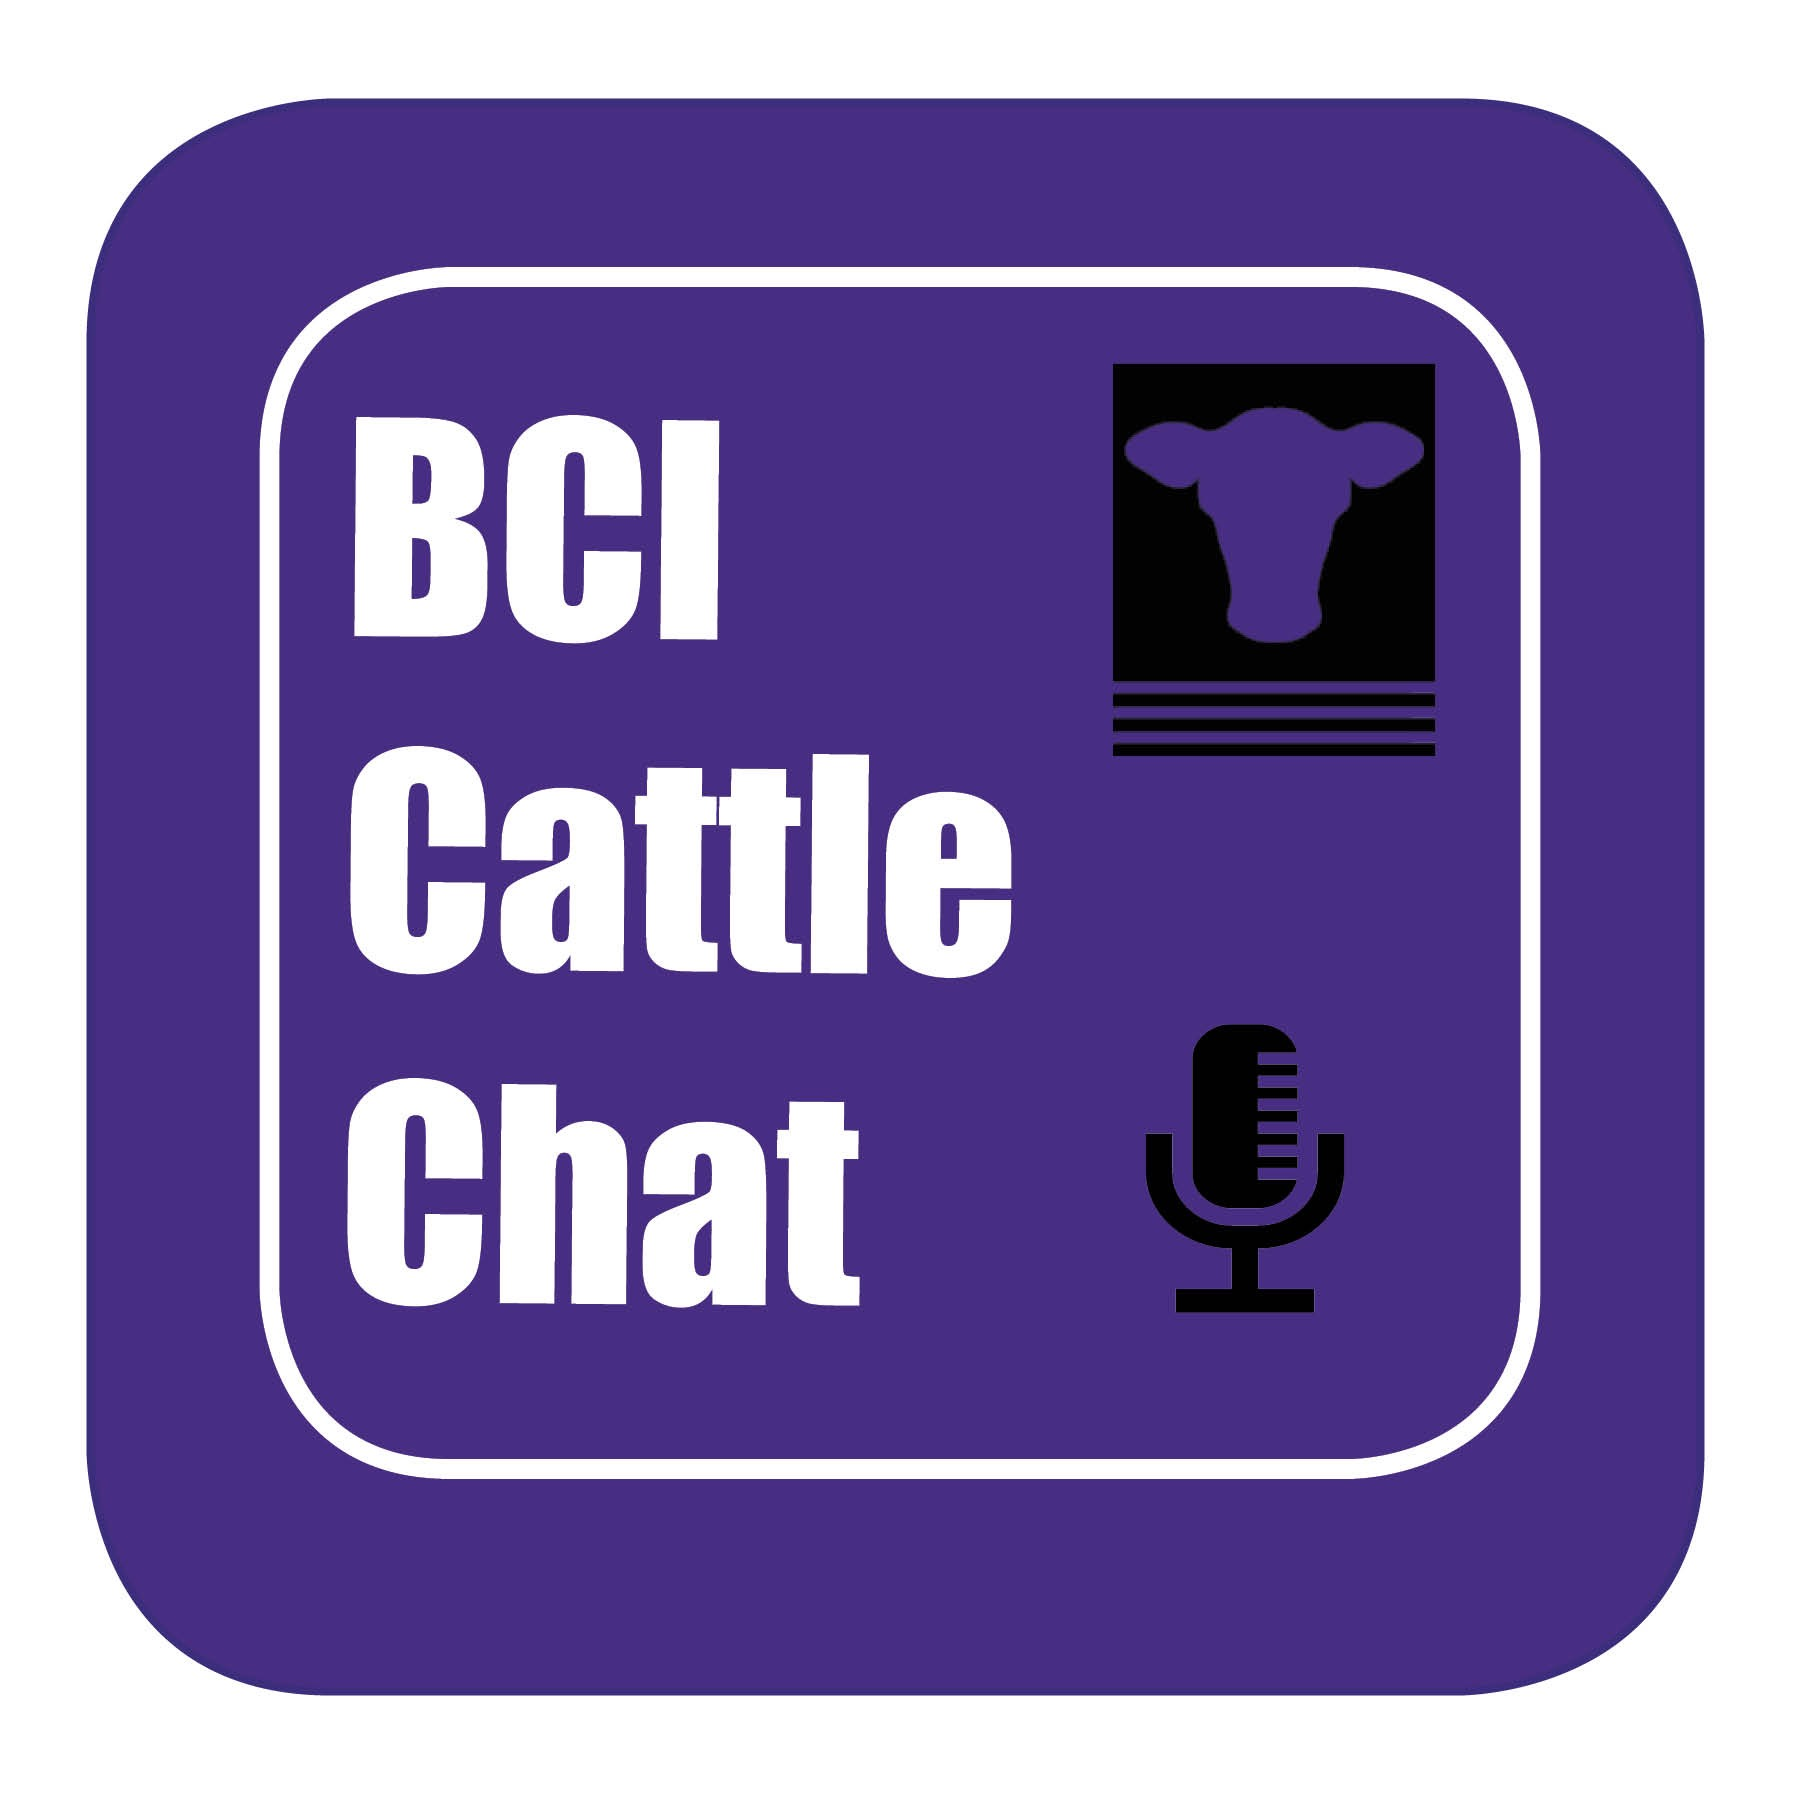 BCI Cattle Chat - Episode 9